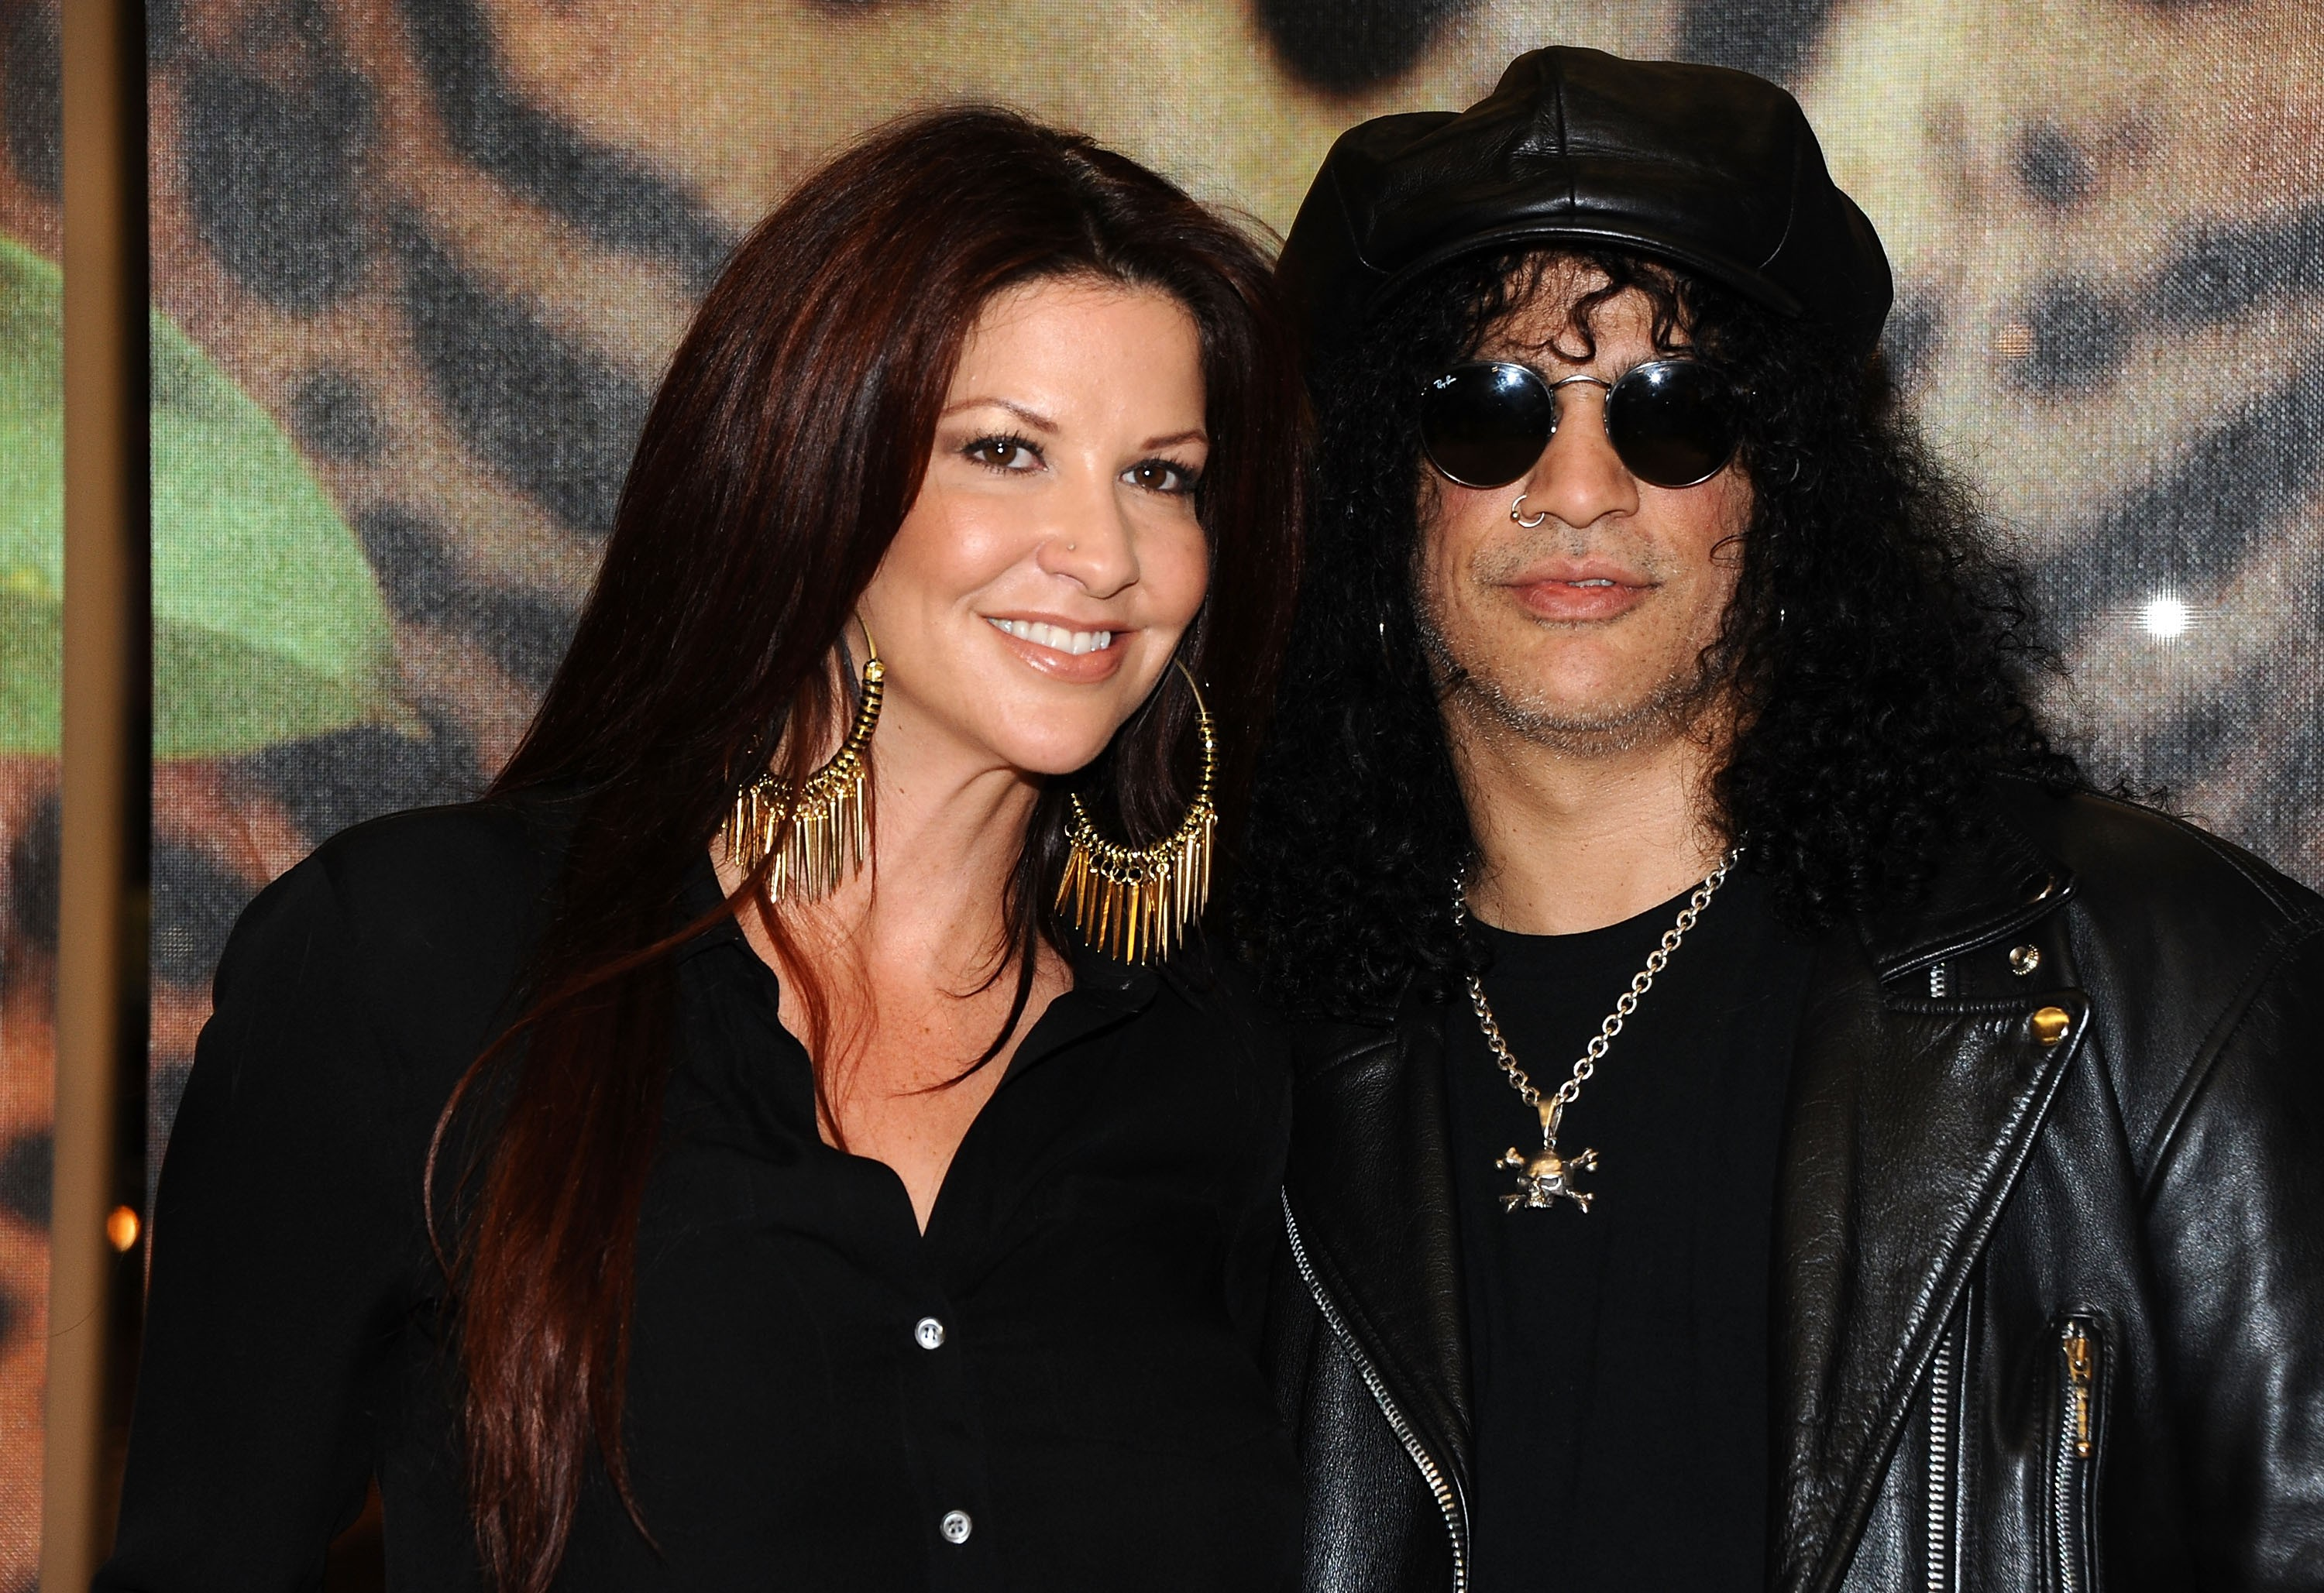 O guitarrista Slash e sua ex-esposa (Foto: Getty Images)